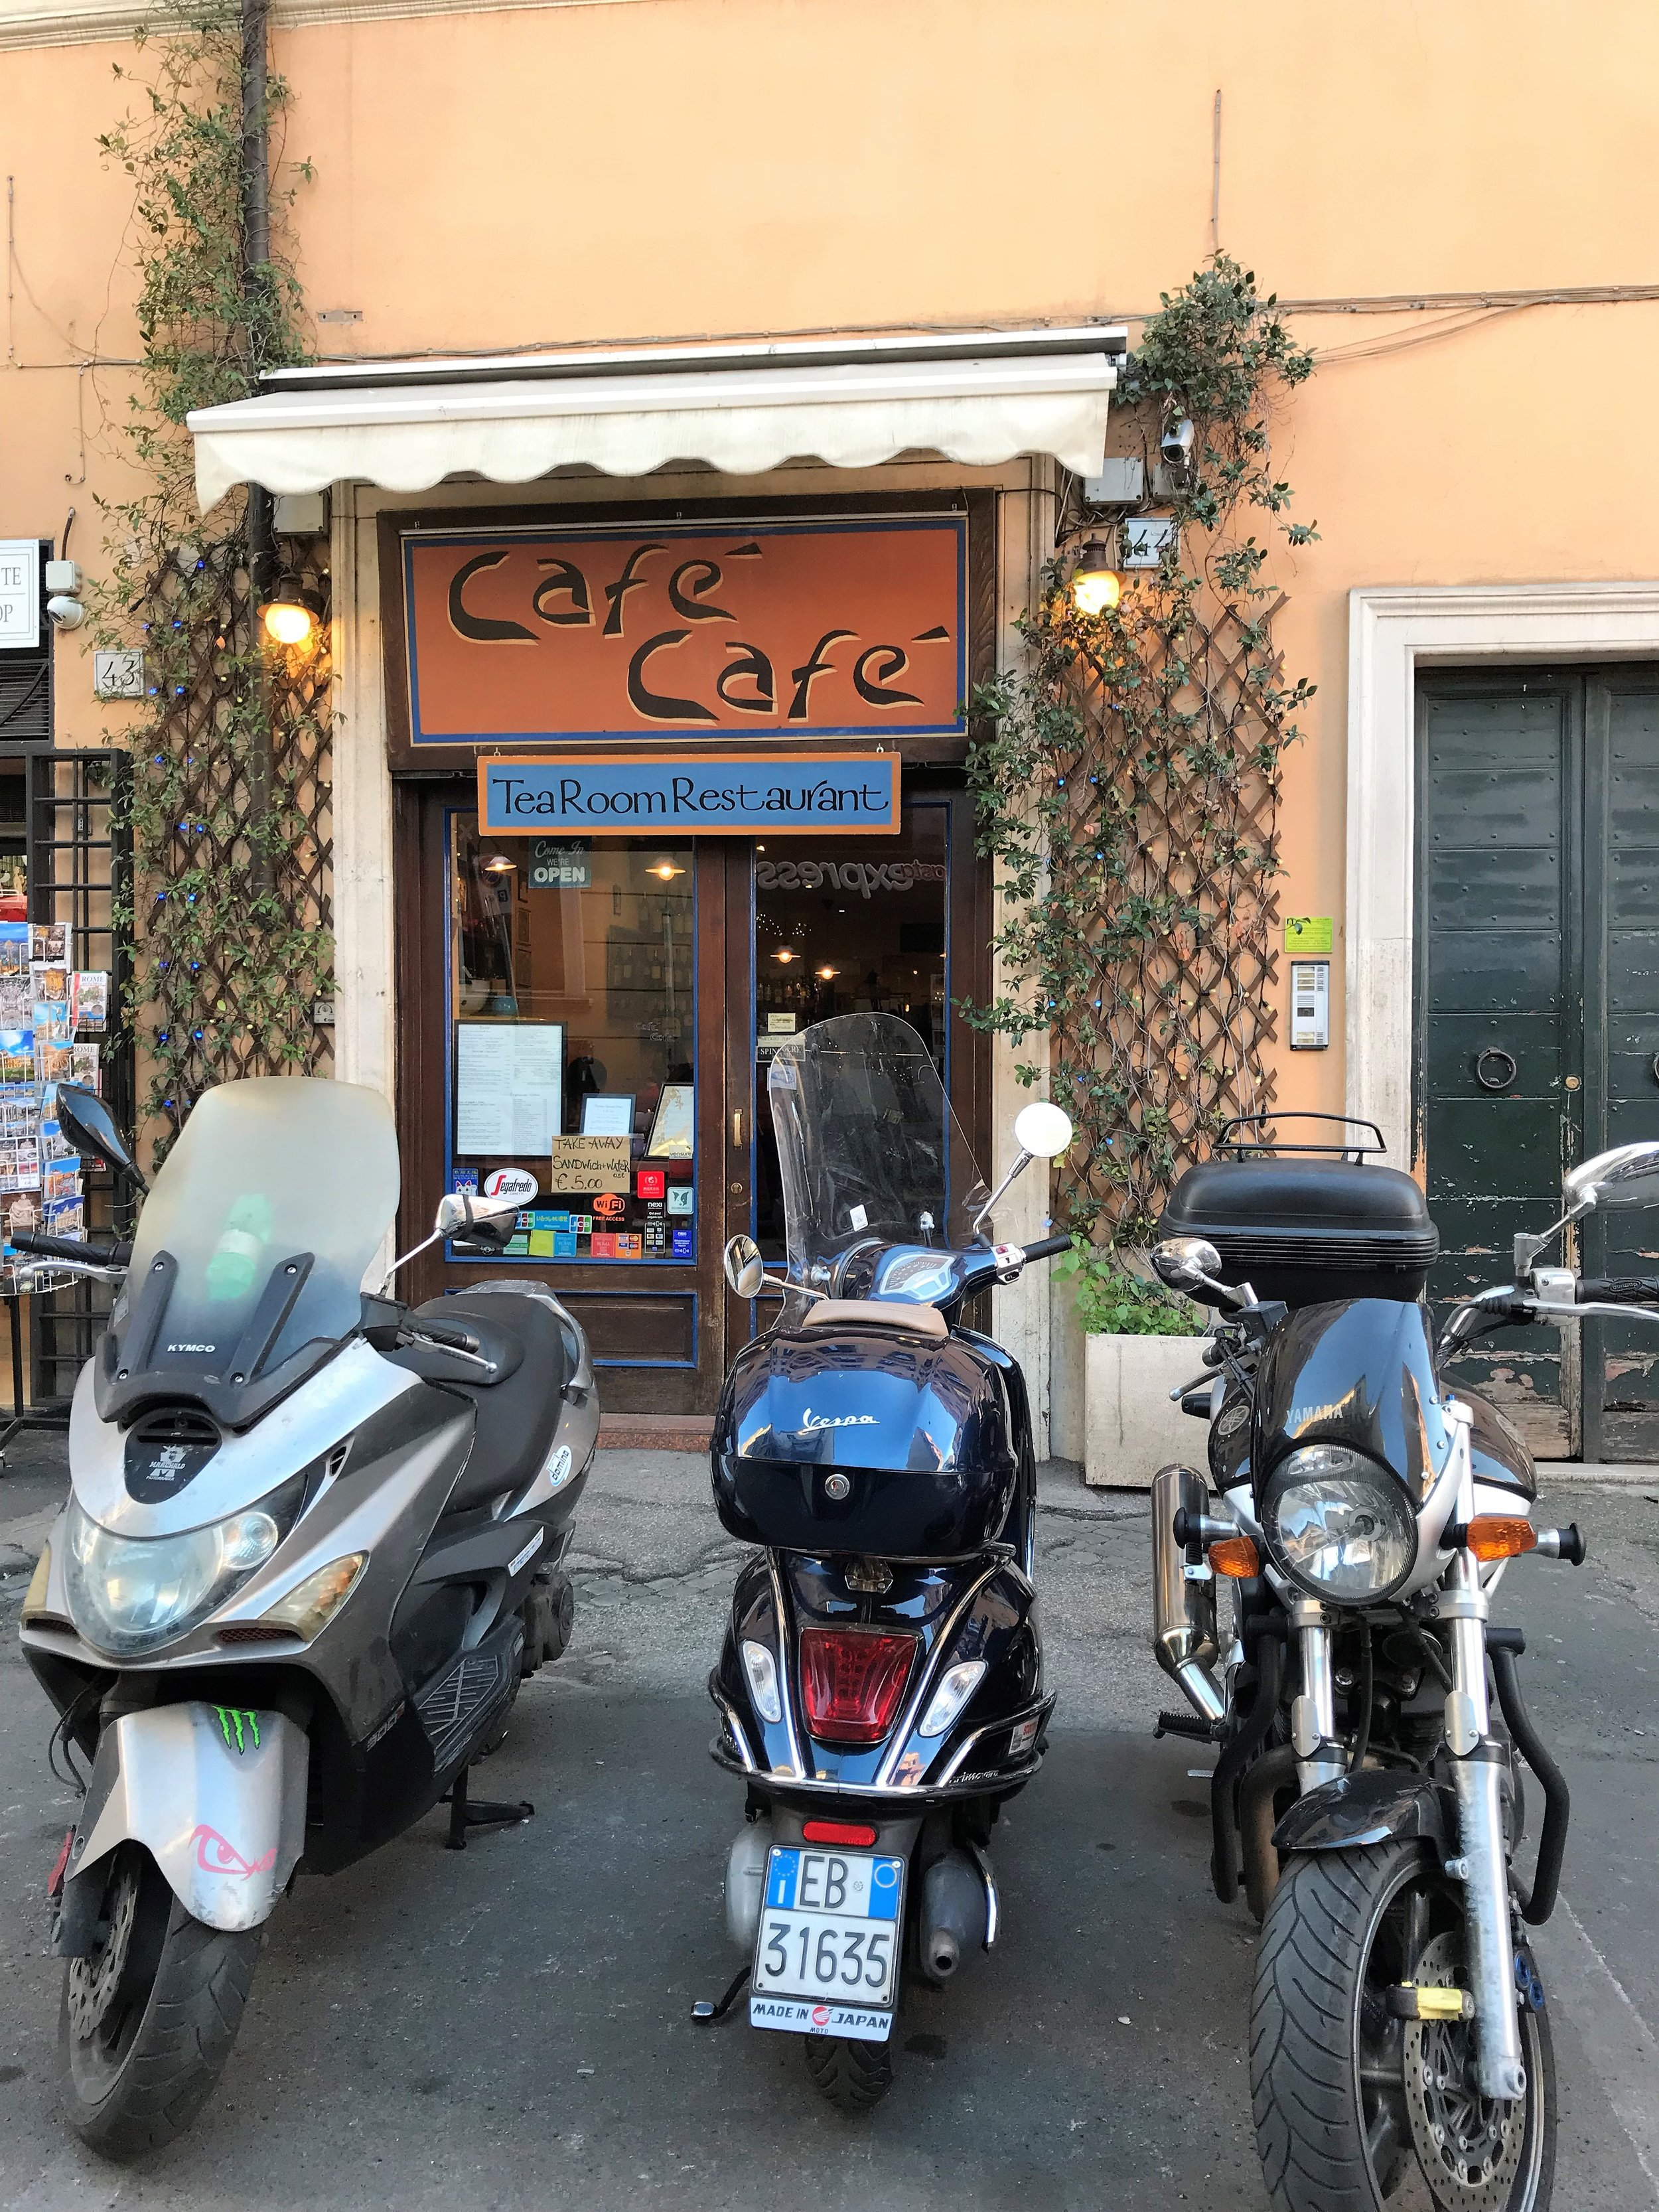 Cafe Cafe in Rome